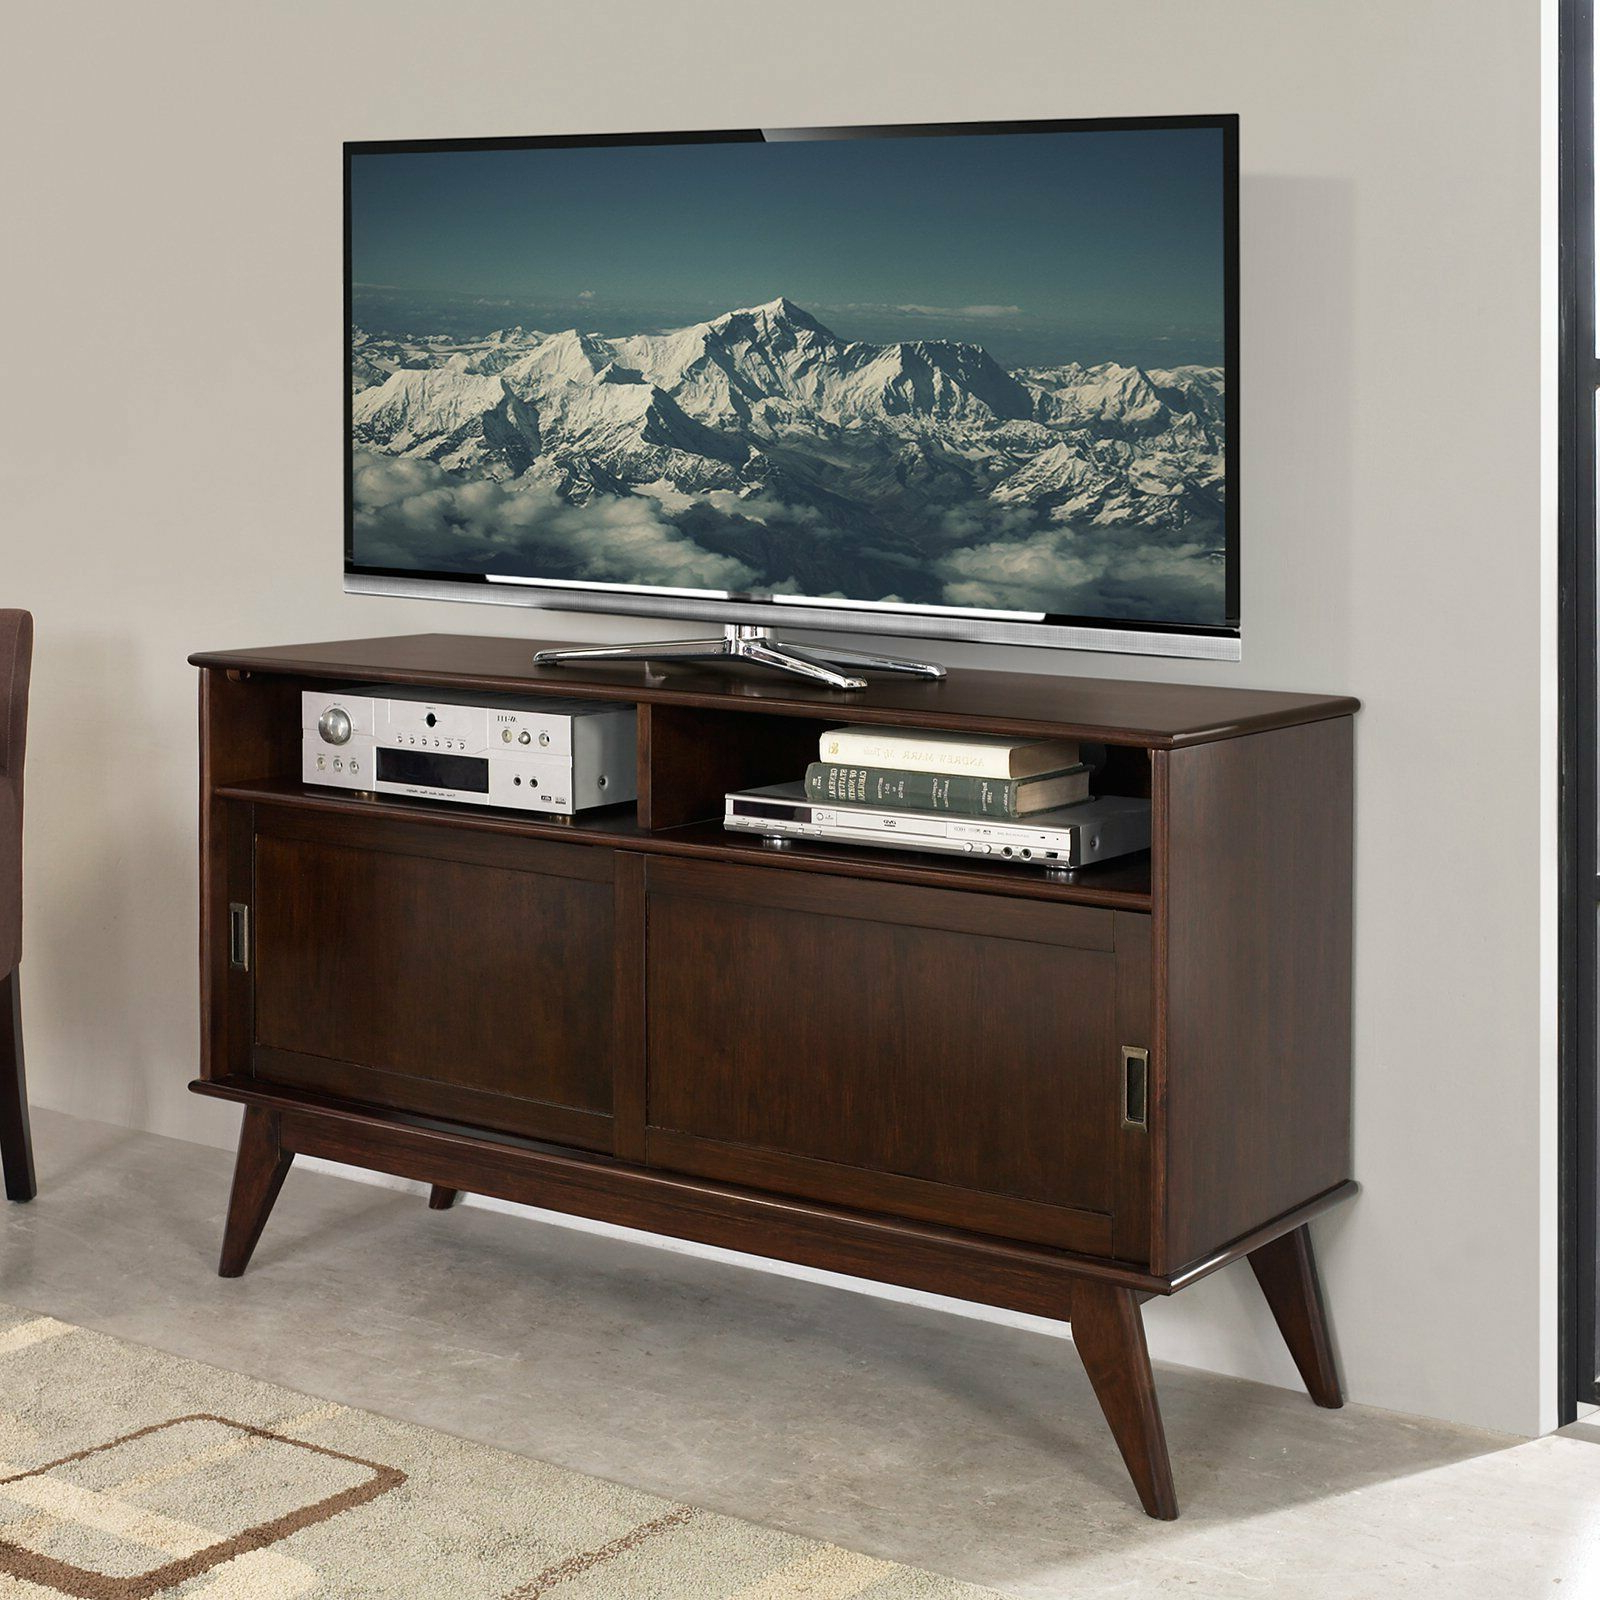 Draper Mid Century Medium Tv Media Stand 60 – Simpli Home | Ebay Within Draper 62 Inch Tv Stands (View 6 of 20)